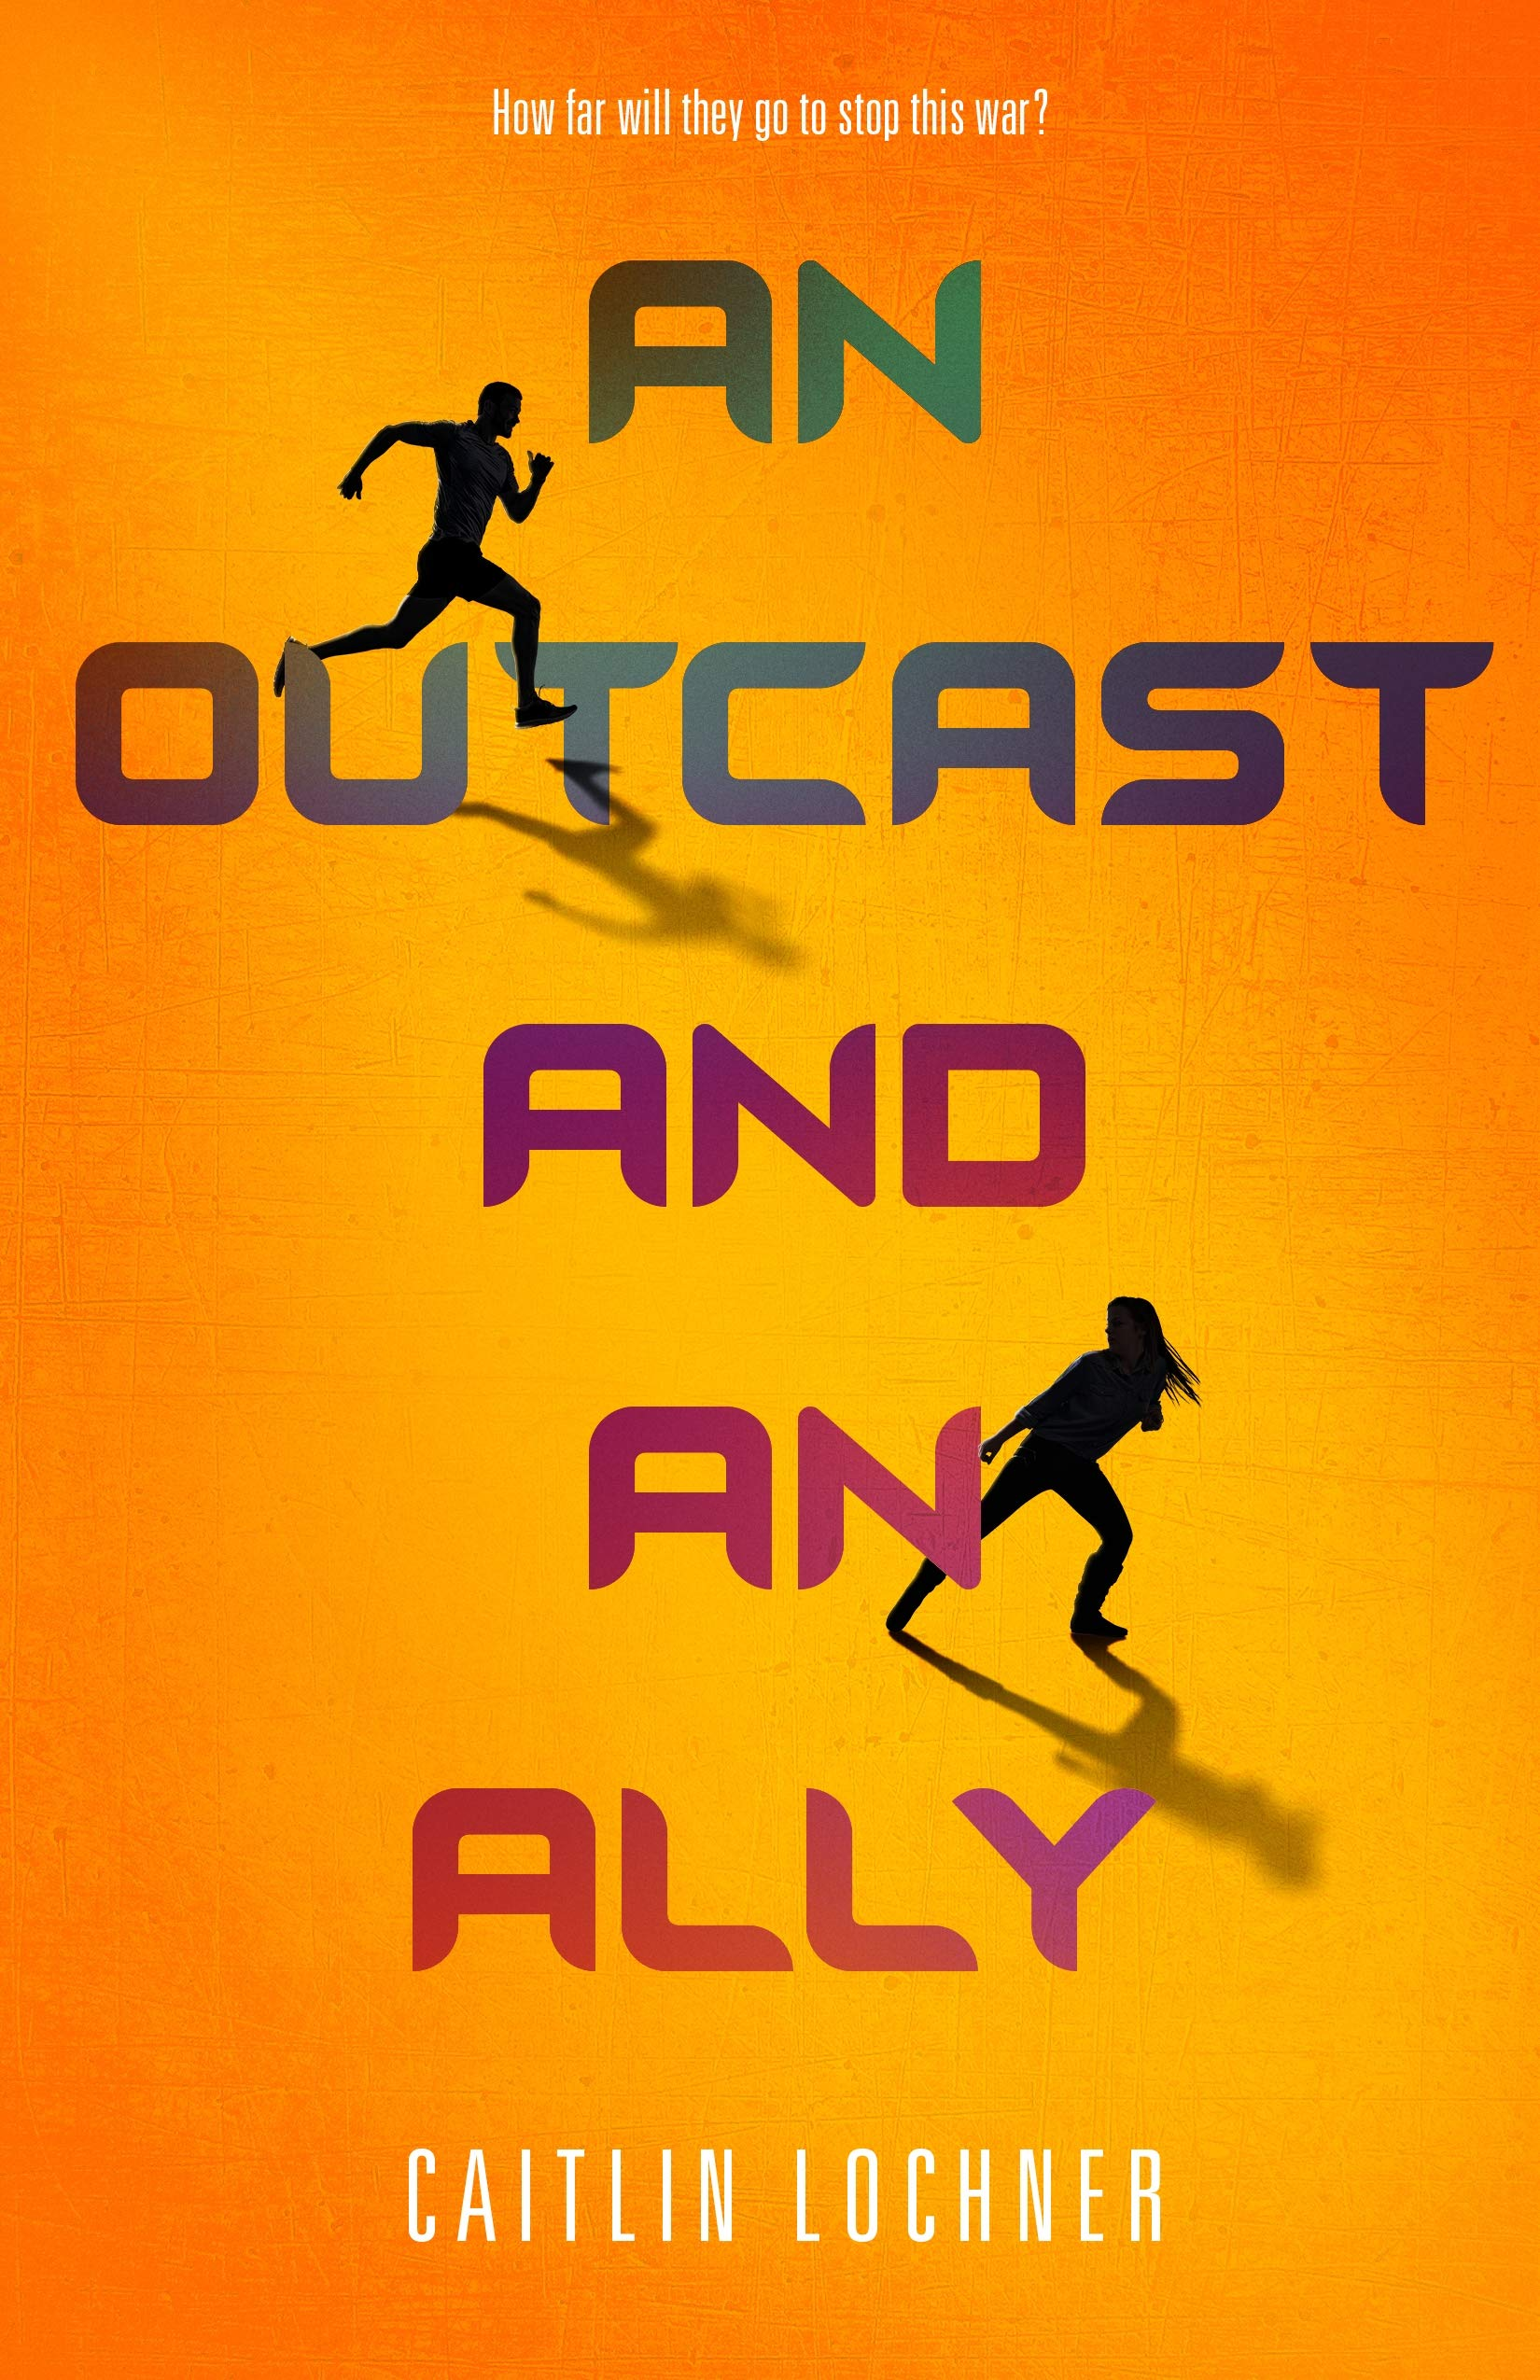 An Outcast and an Ally - Caitlin Lochner